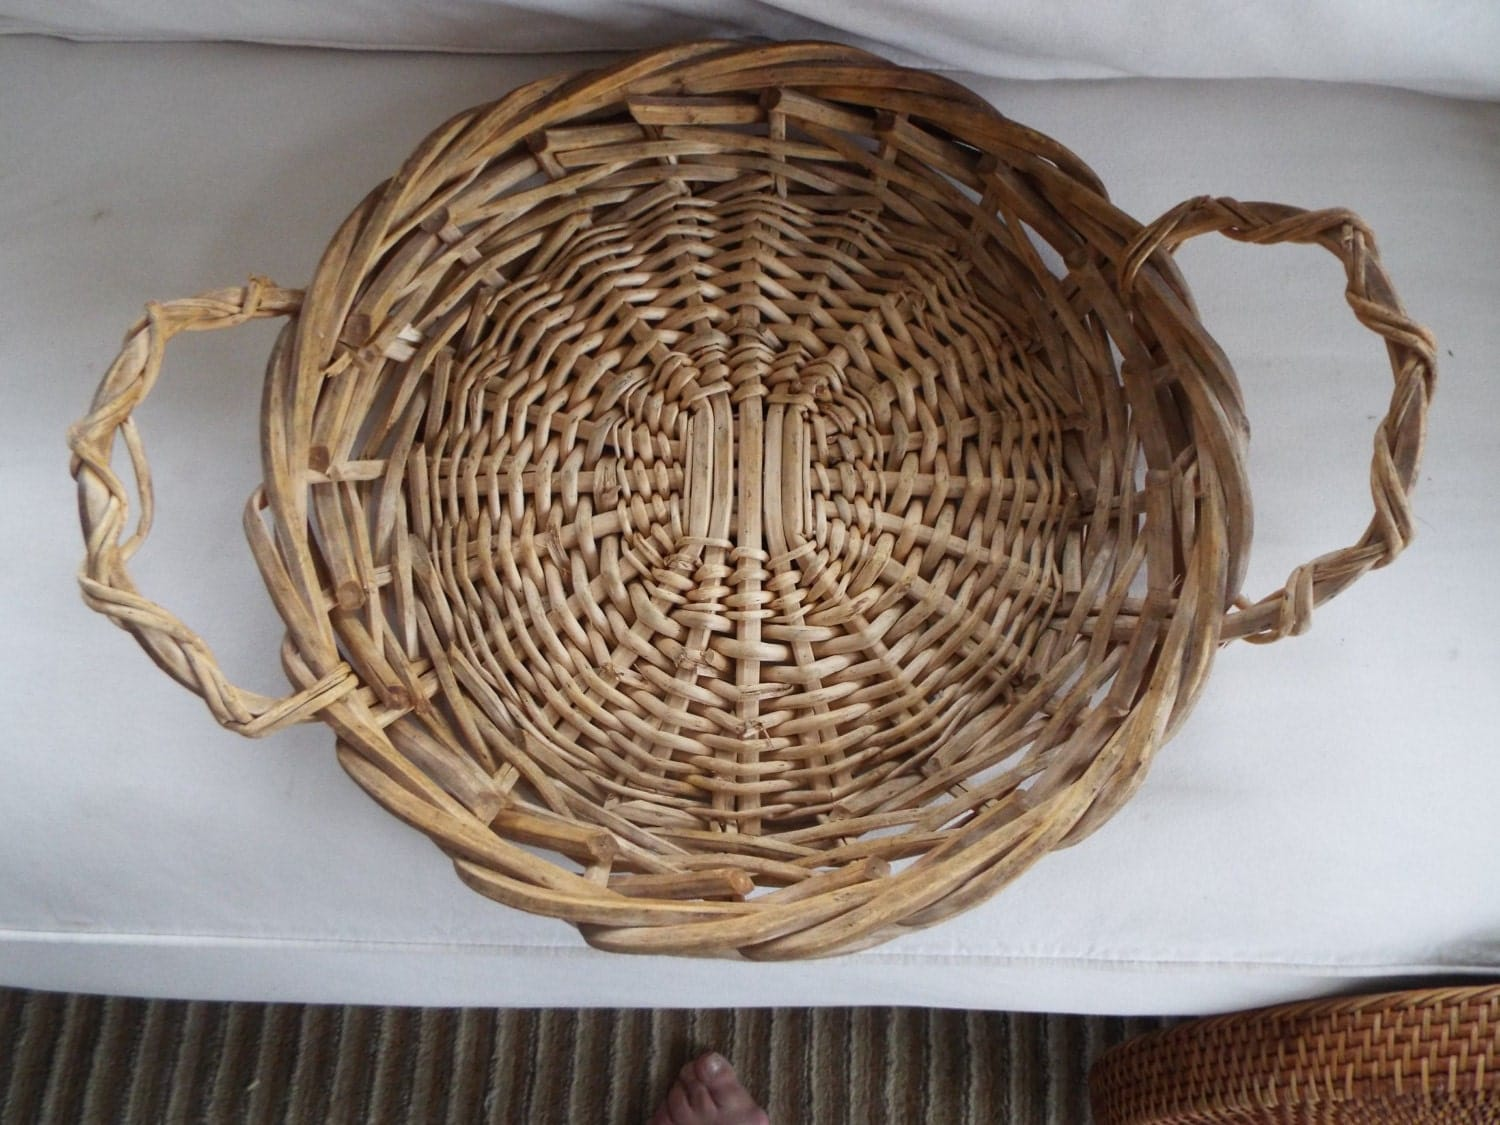 How To Weave A Basket Out Of Twigs : Large round french hand woven wicker twig serving tray basket